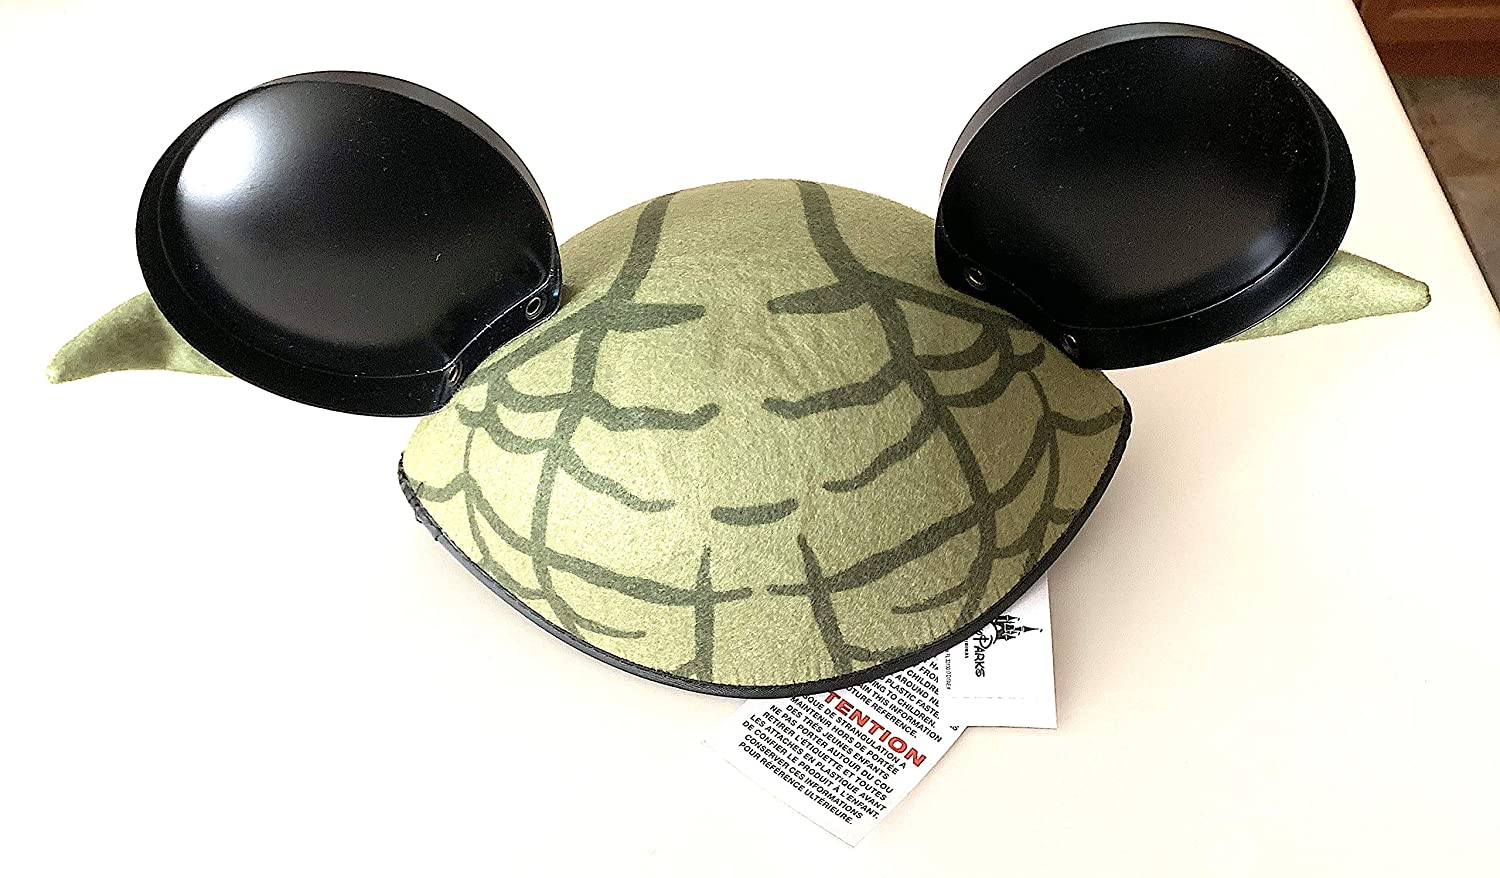 info for 2a59e 3d833 Amazon.com  Disney Parks Star Wars Yoda Mickey Mouse Ears Hat Adult Size   Everything Else